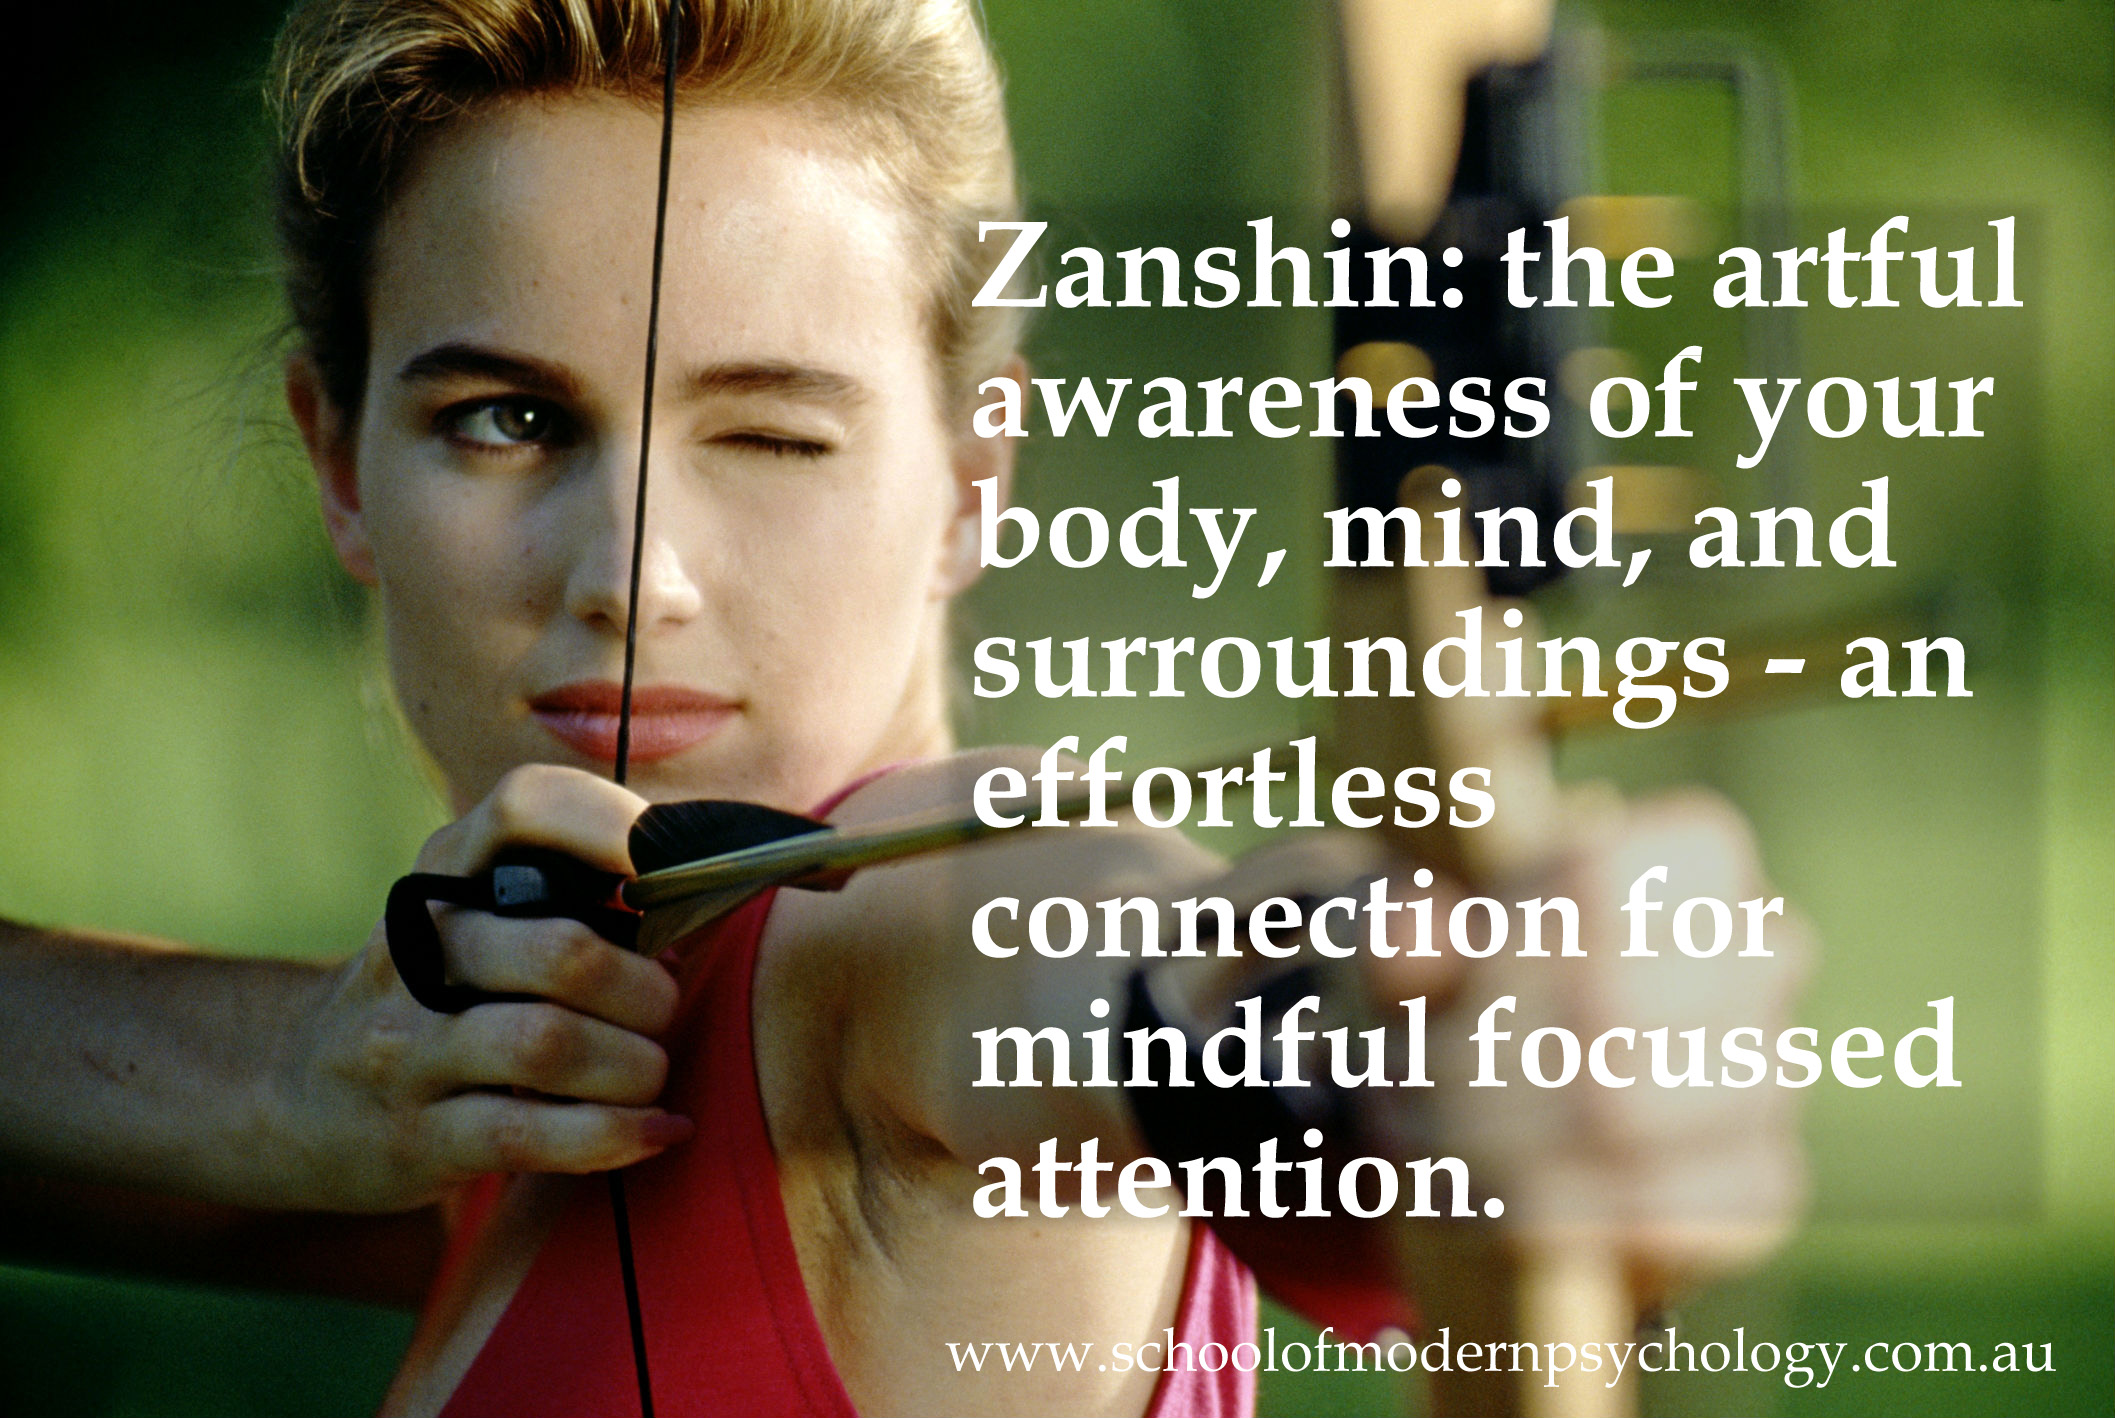 School of Modern Psychology | Where Mindfulness Meets 'Zanshin'